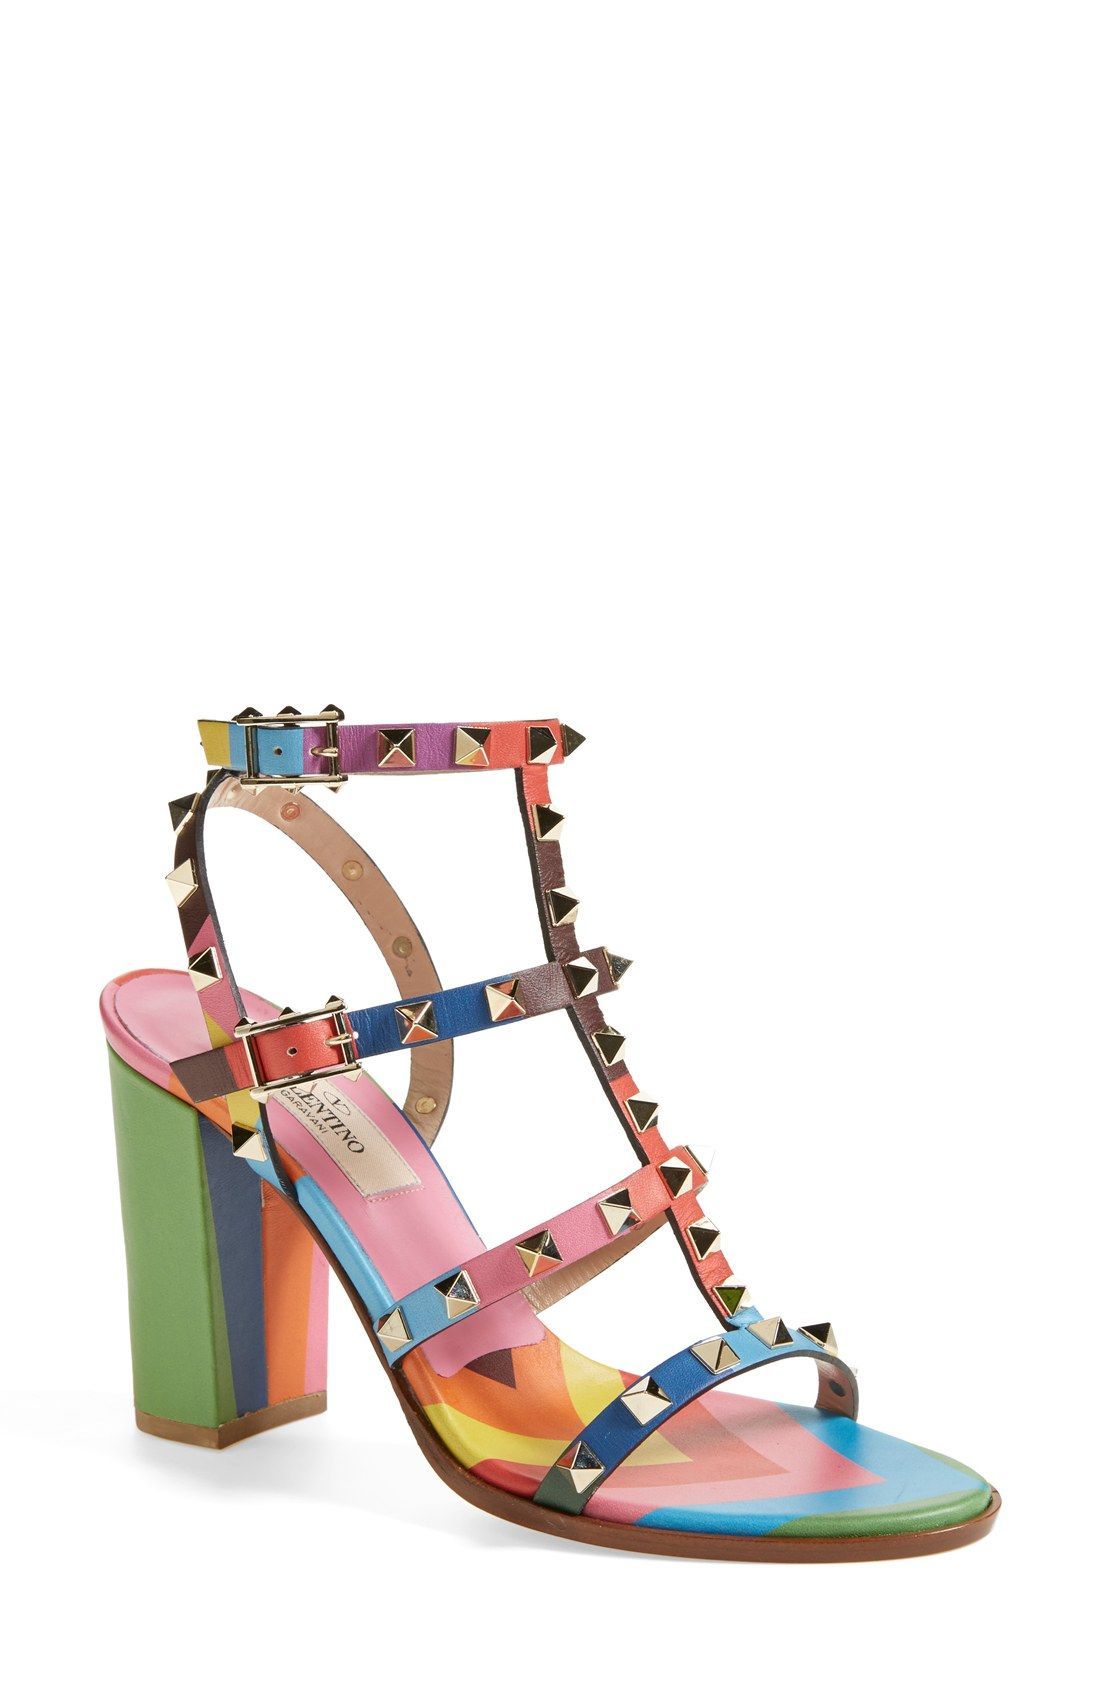 b9295faa13 These rainbow Valentino 'Rockstud' T-Strap sandals are on the wish list!